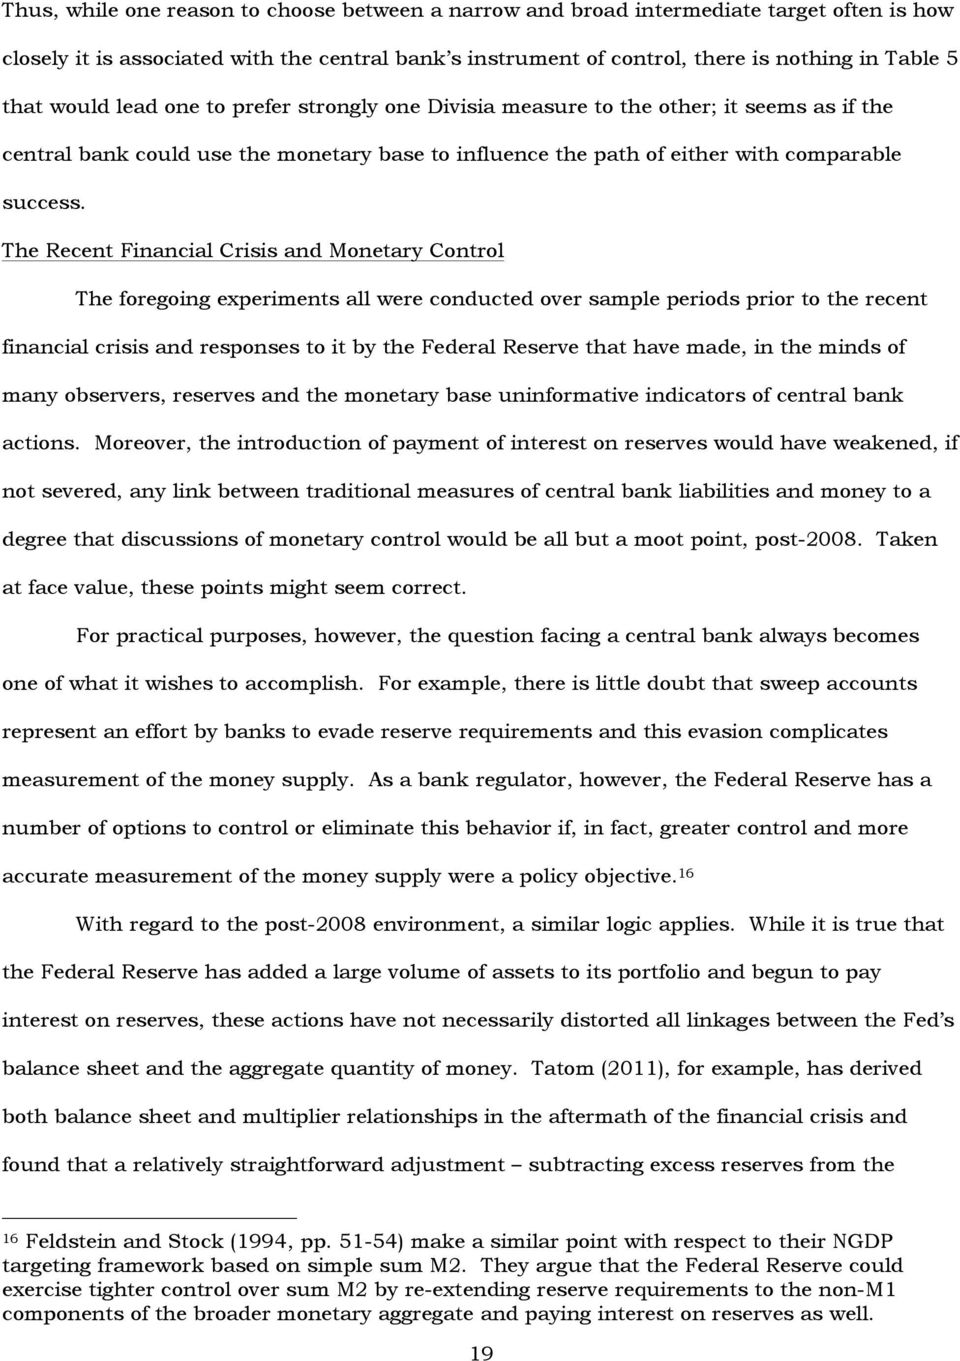 The Recen Financial Crisis and Moneary Conrol The foregoing experimens all were conduced over sample periods prior o he recen financial crisis and responses o i by he Federal Reserve ha have made, in